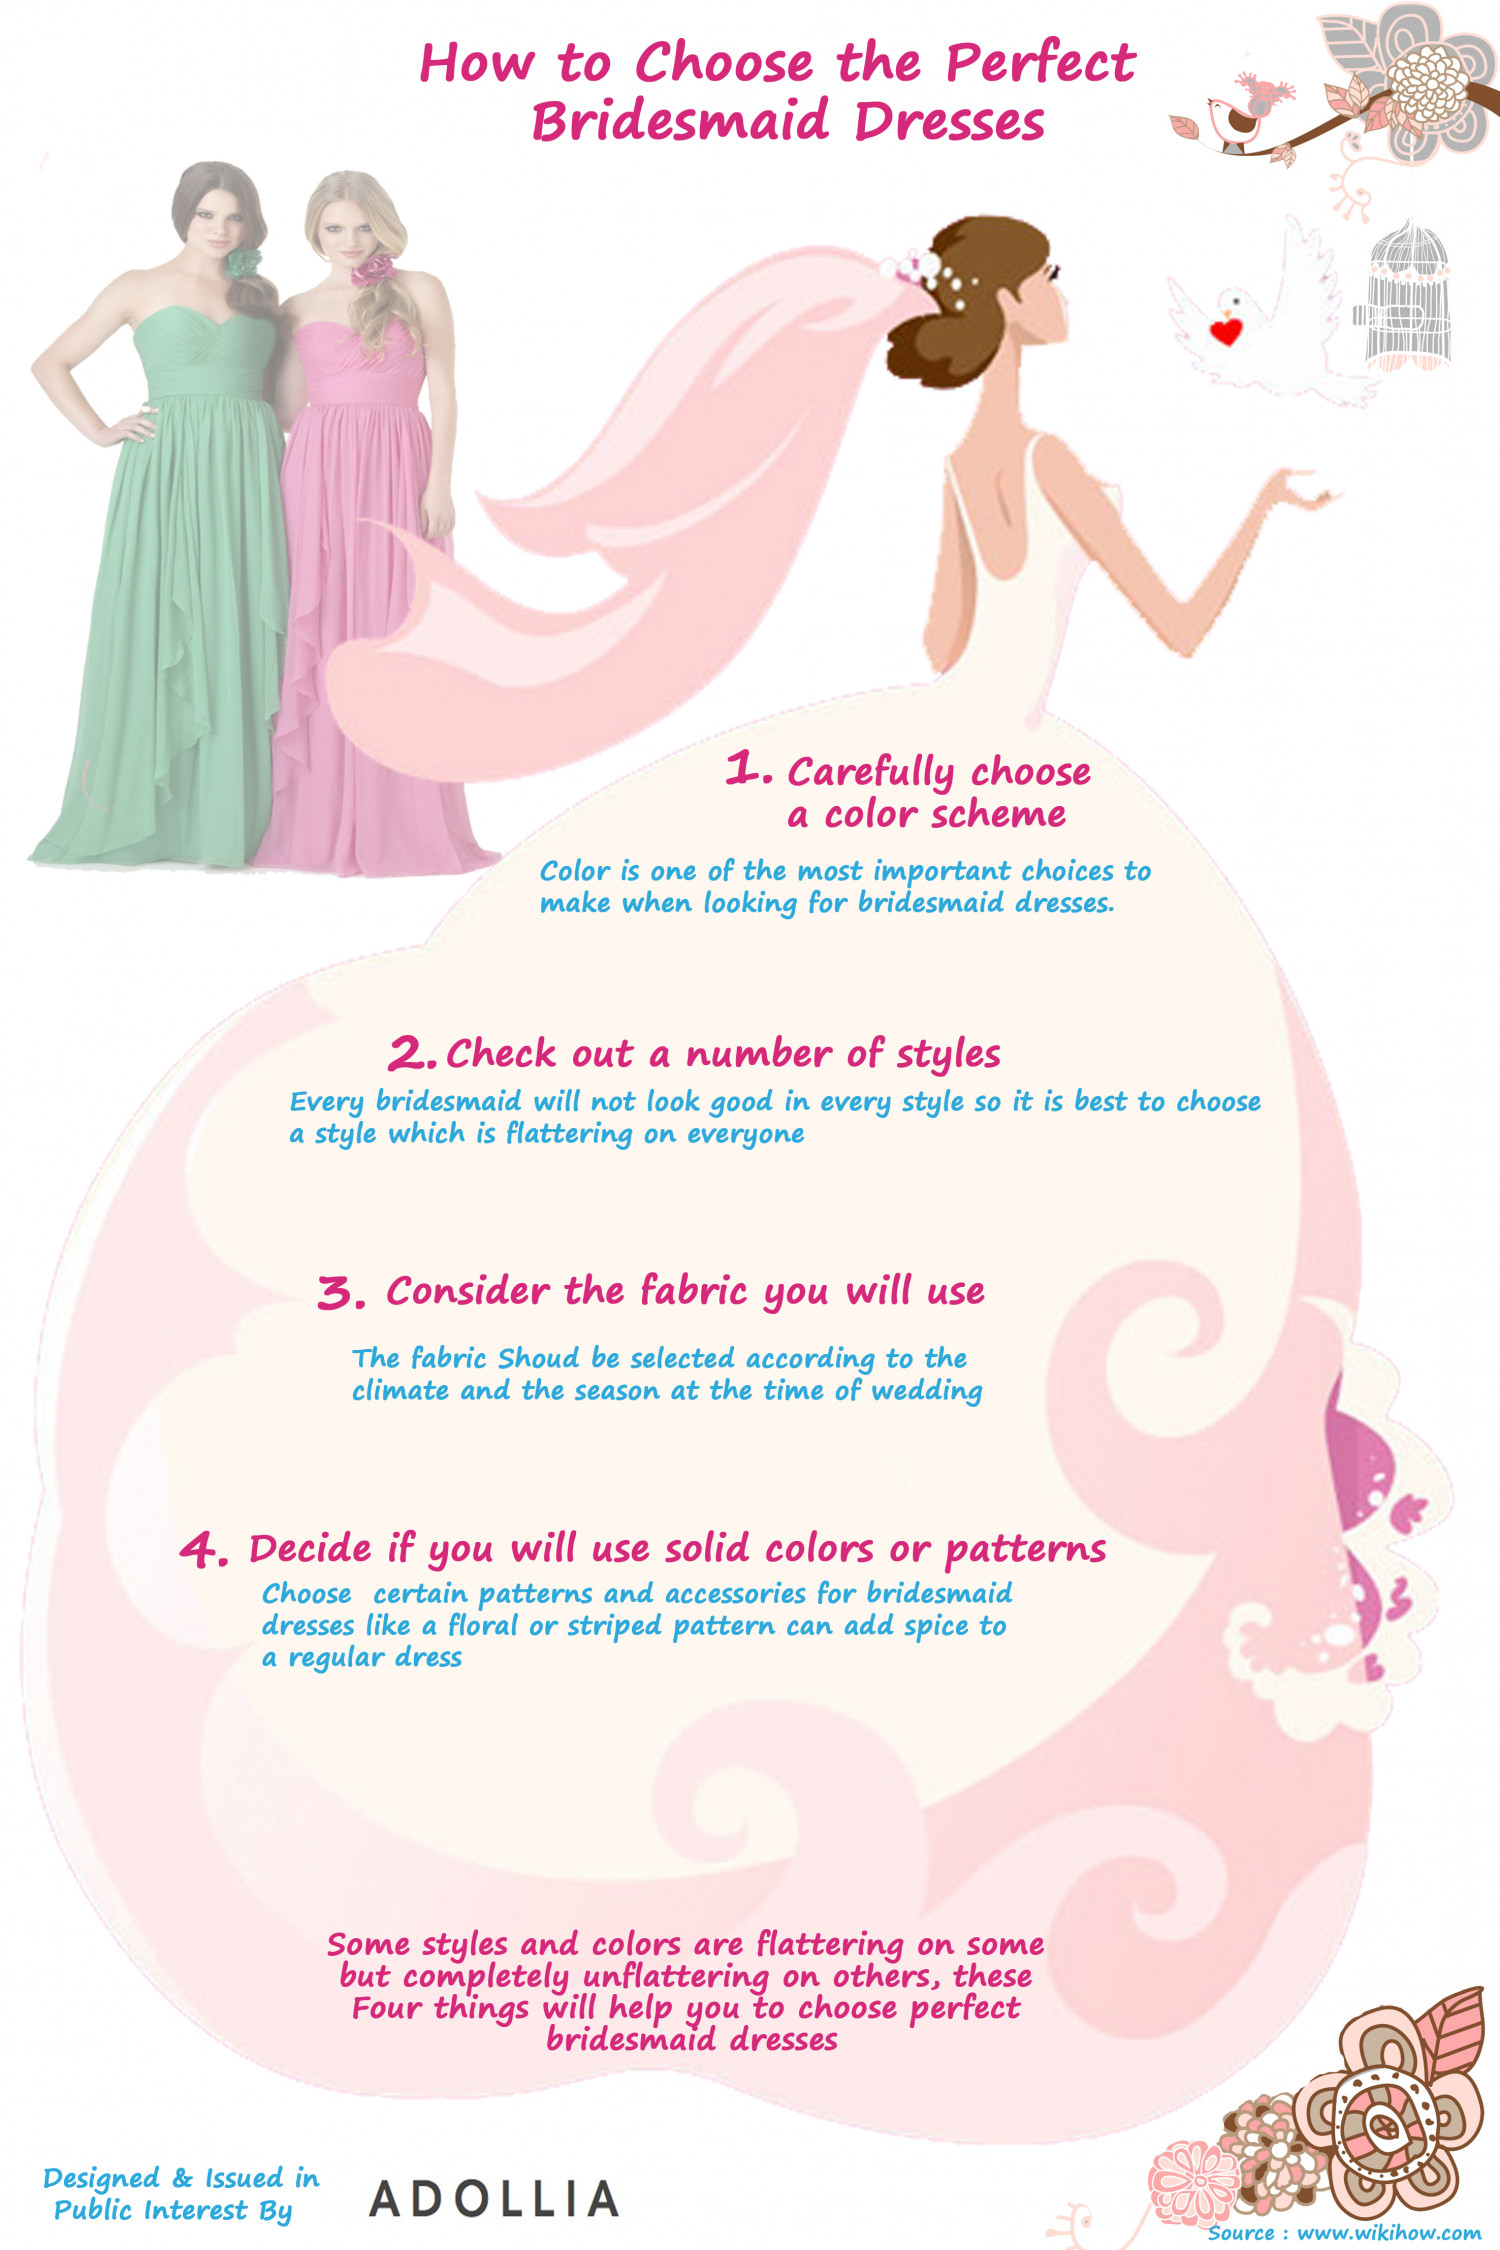 How to choose the perfect bridesmaid dresses visual how to choose the perfect bridesmaid dresses infographic ombrellifo Gallery